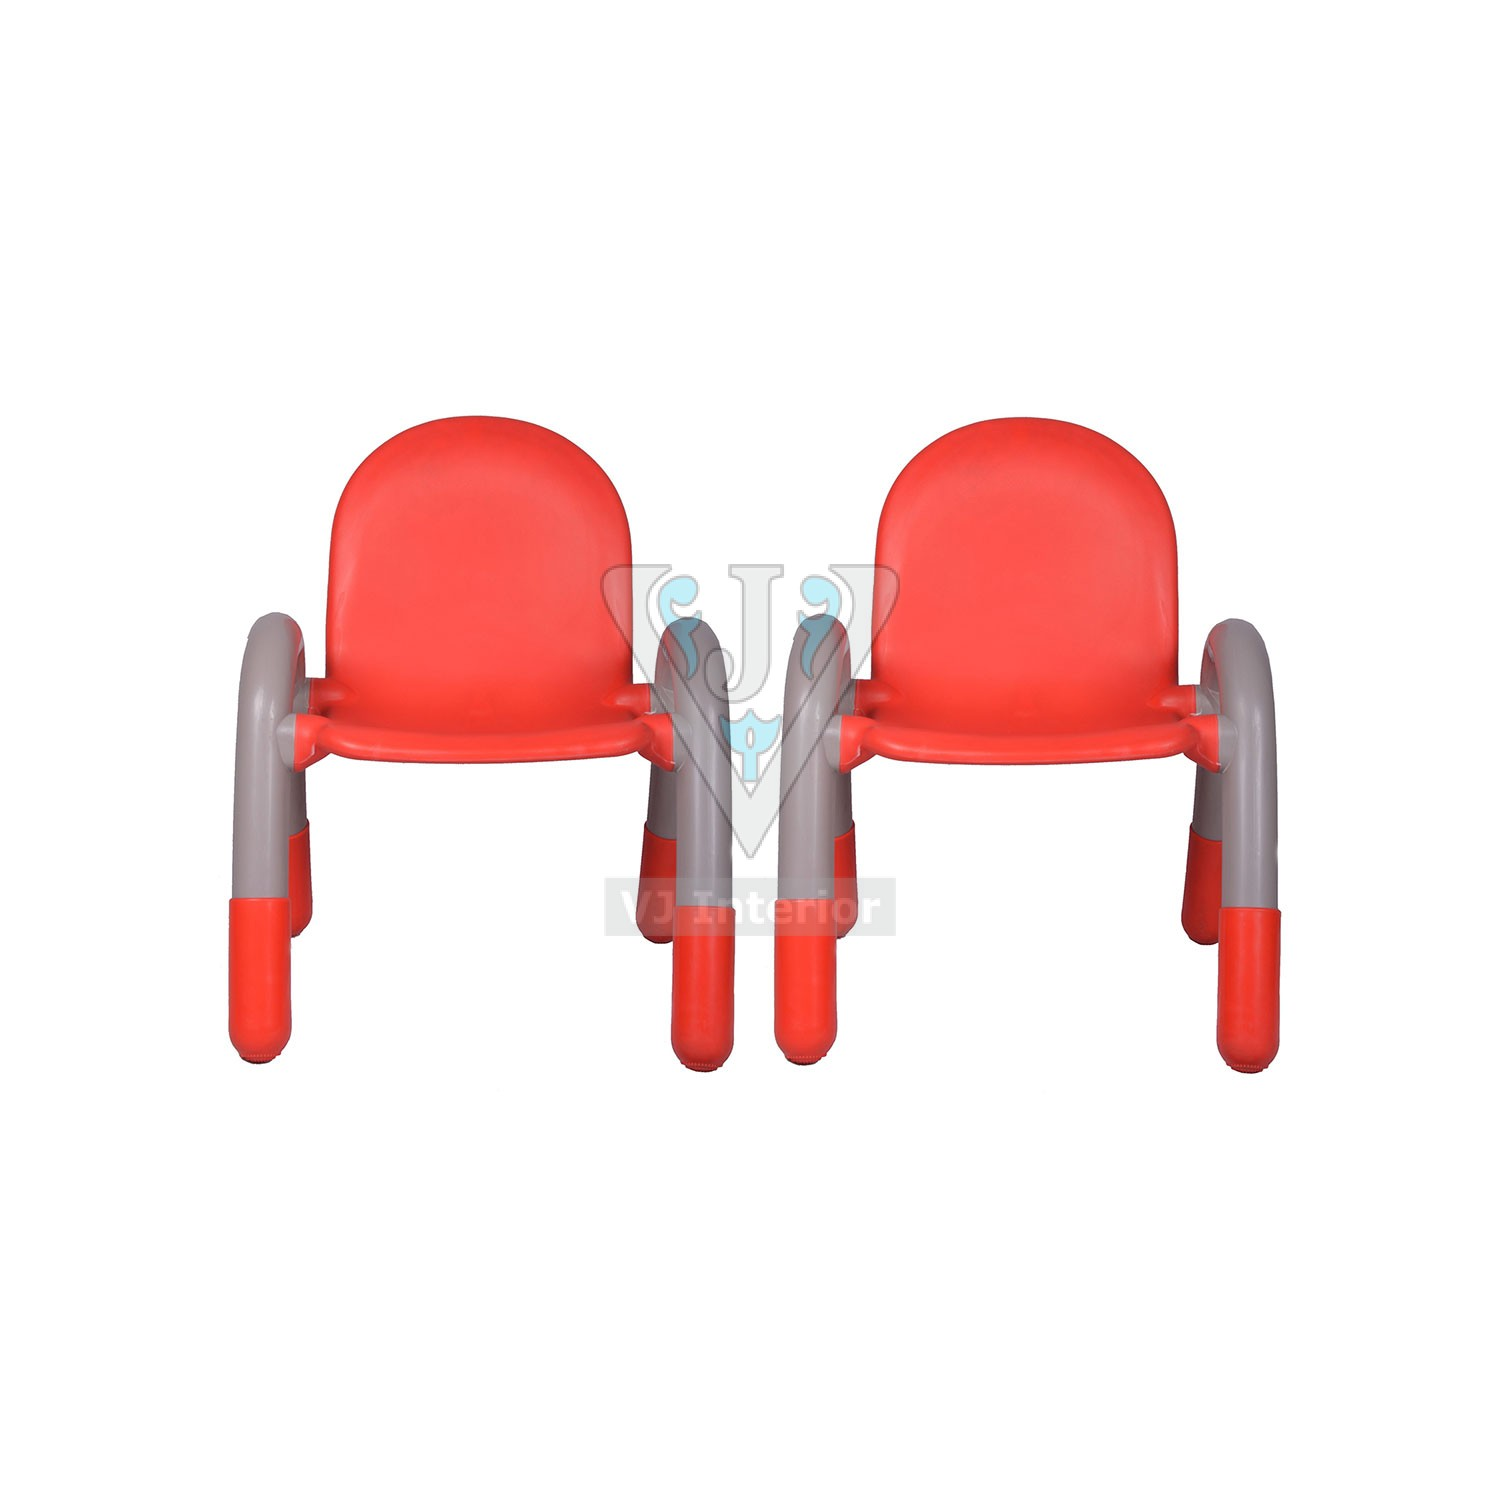 Plastic Kids Chairs The Chico Engineering Plastic Kids Chair Red